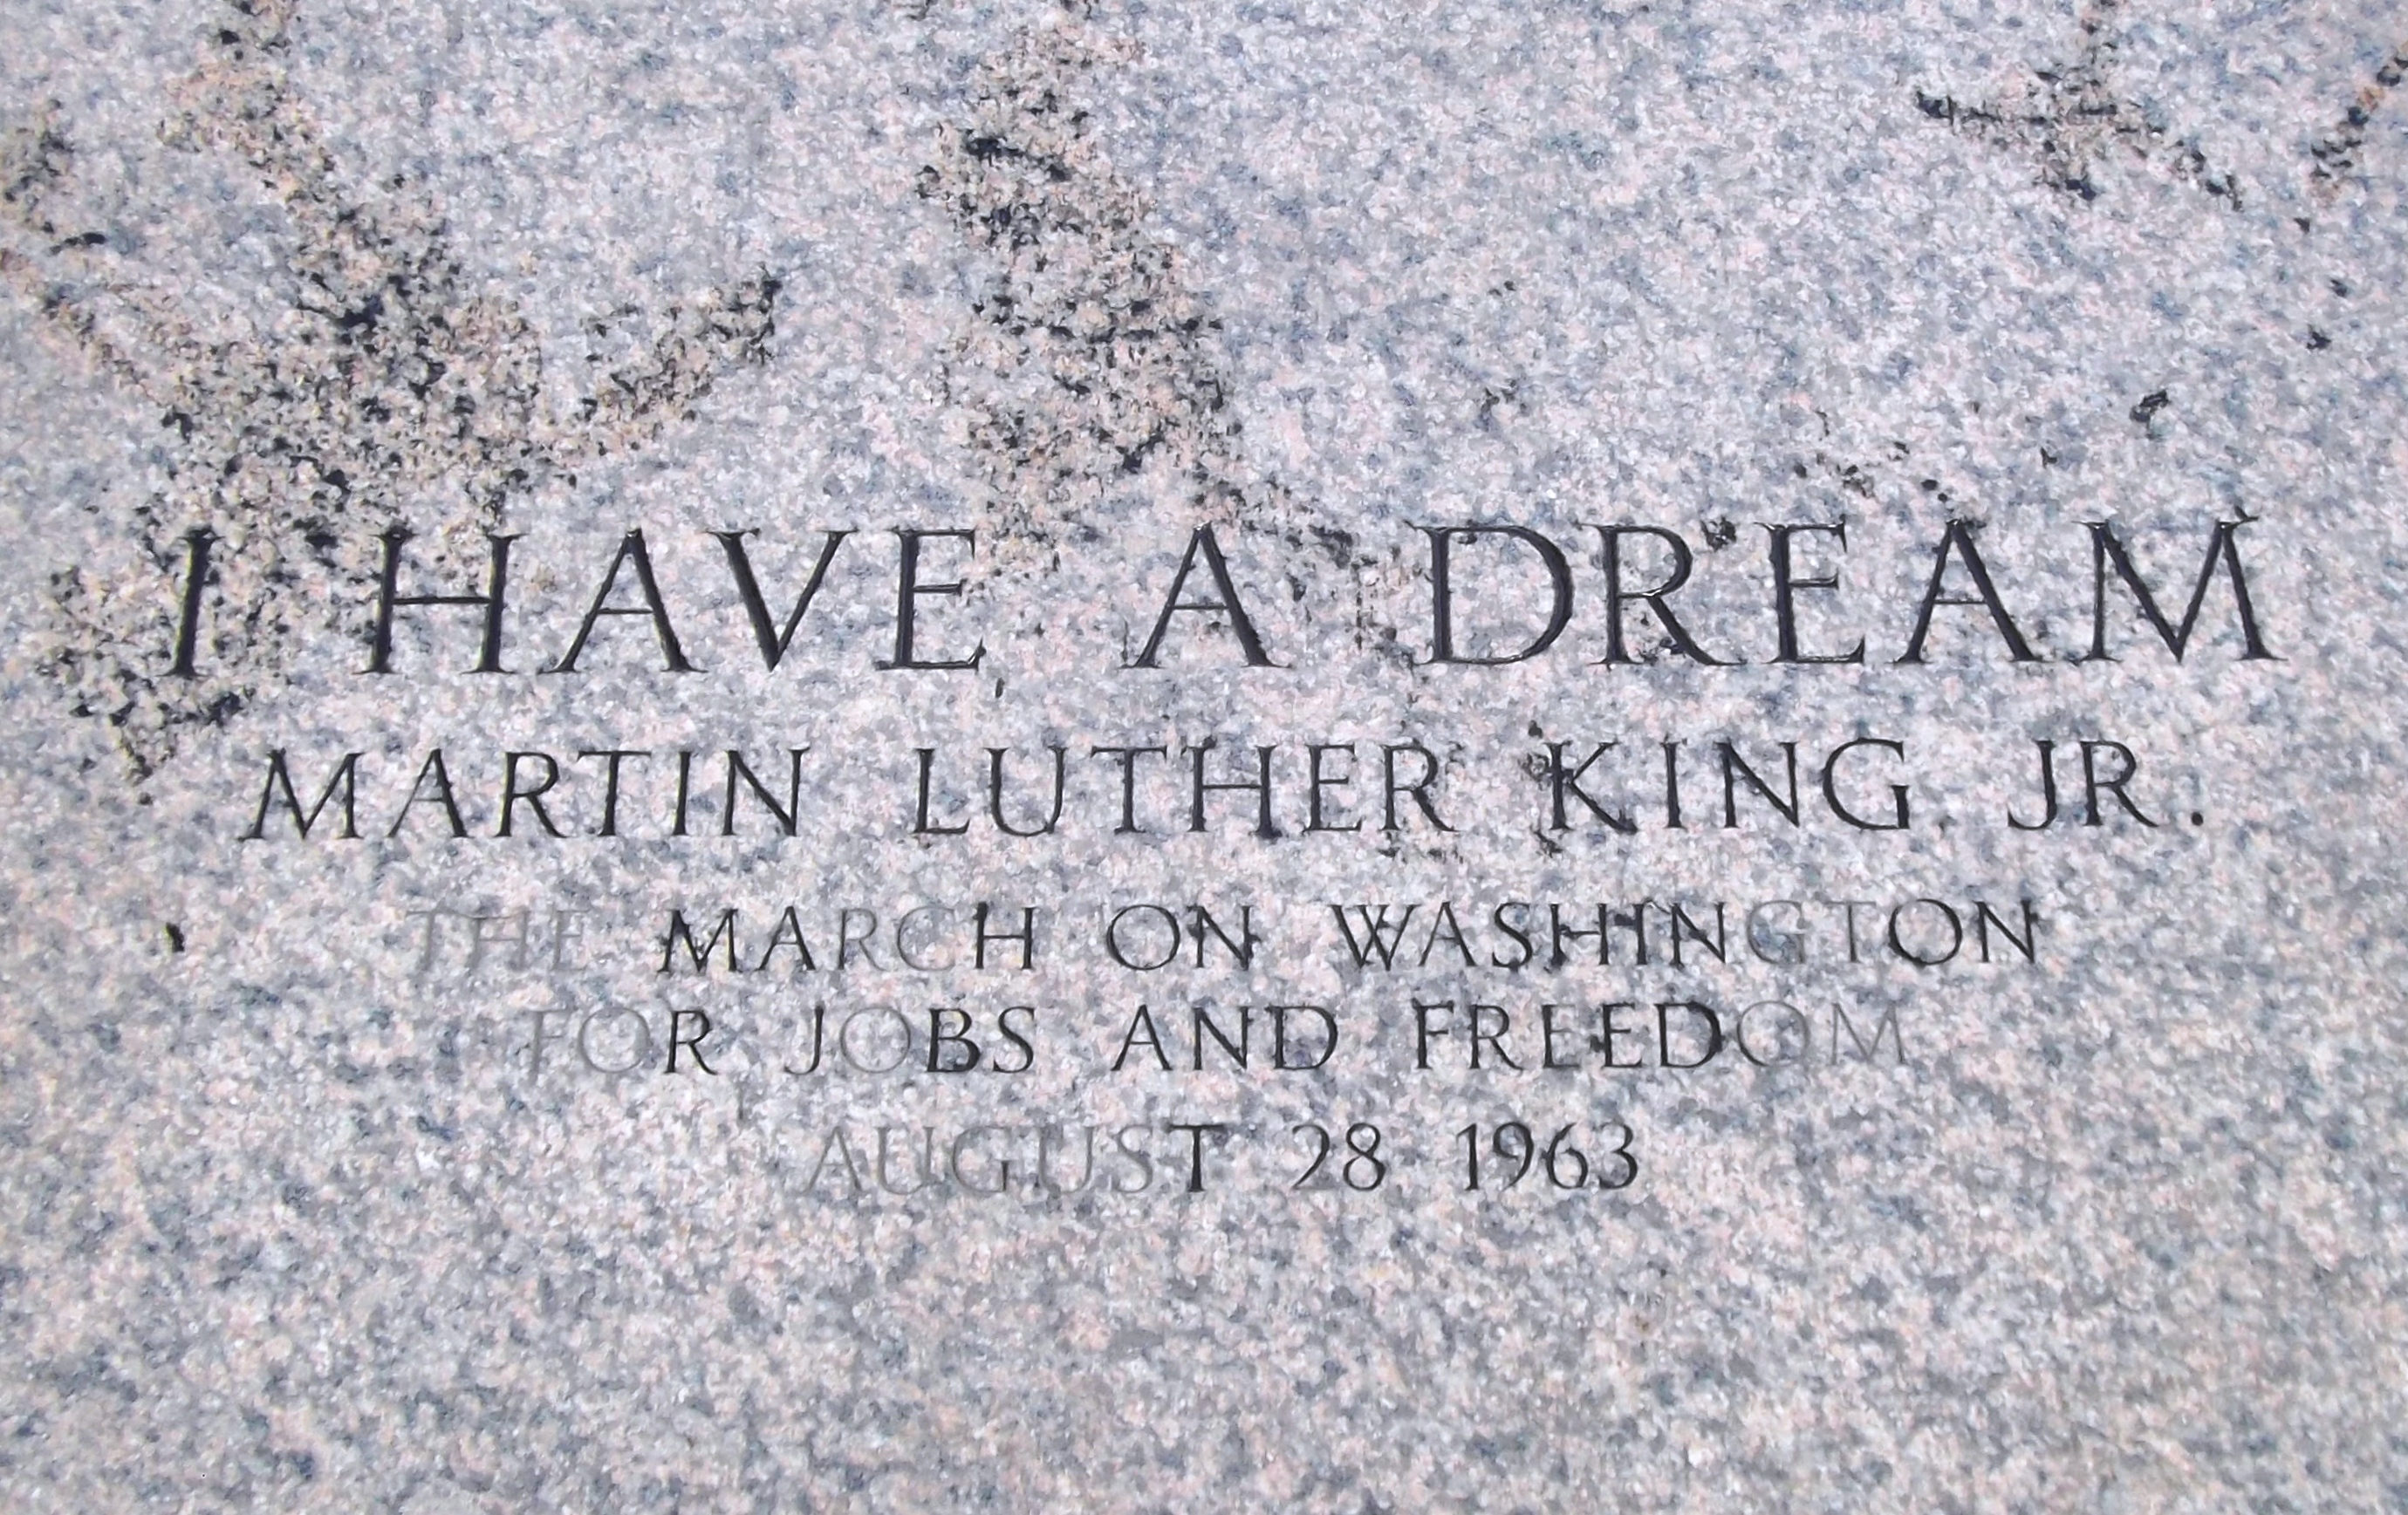 Inscription, steps of the Lincoln Memorial where King gave his speech